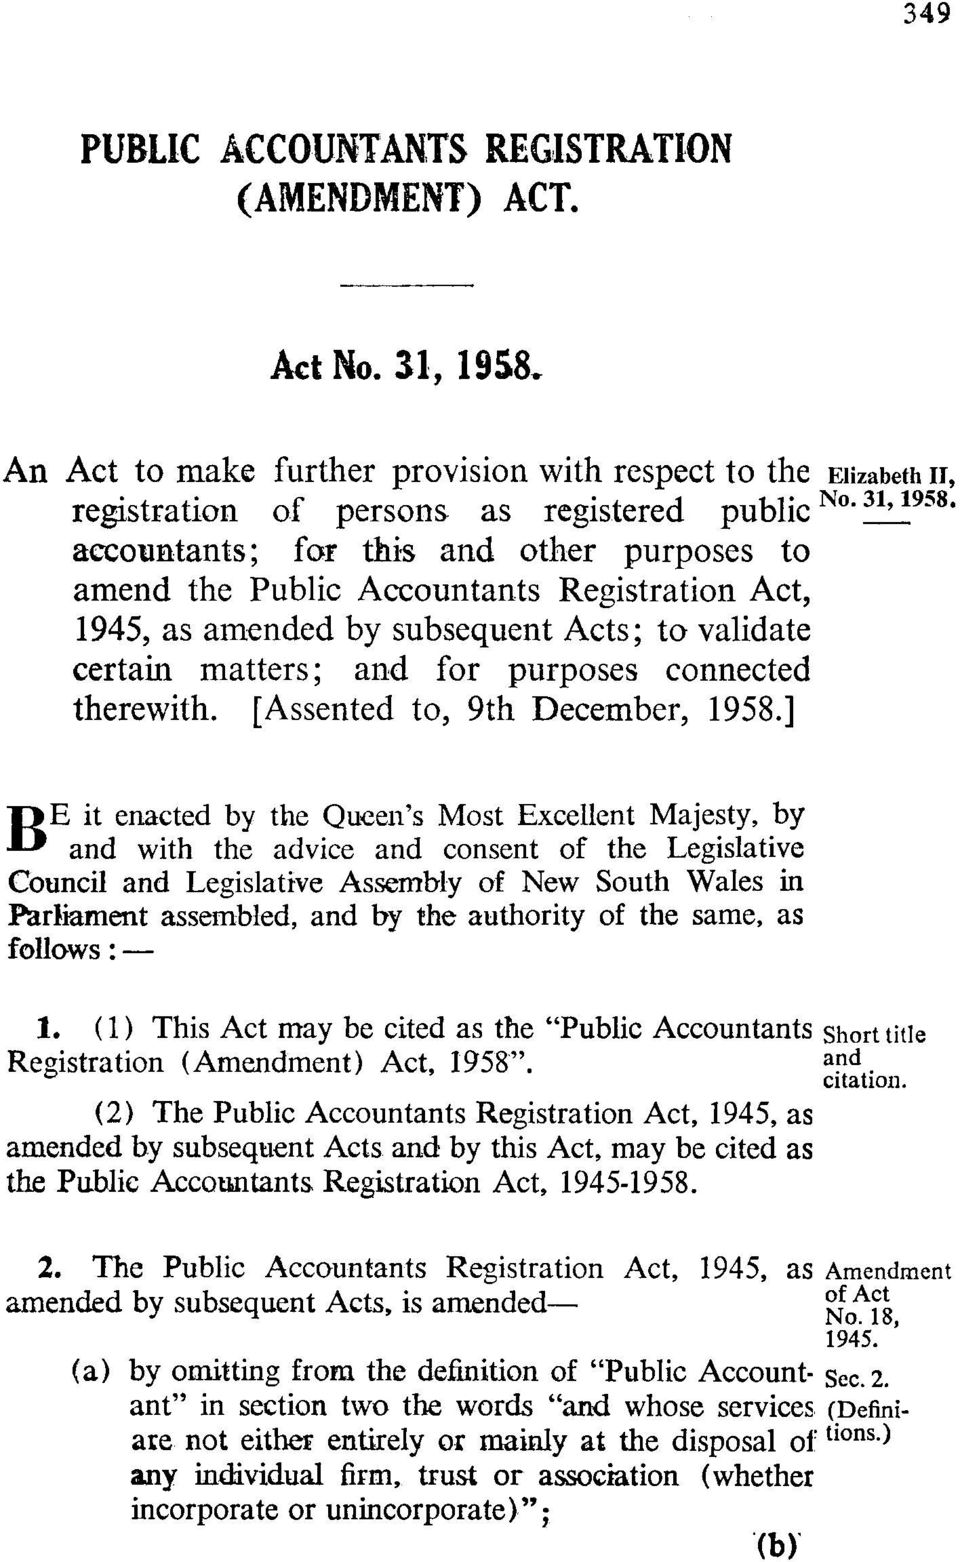 amended by subsequent Acts; to validate certain matters; and for purposes connected therewith. [Assented to, 9th December, 1958.